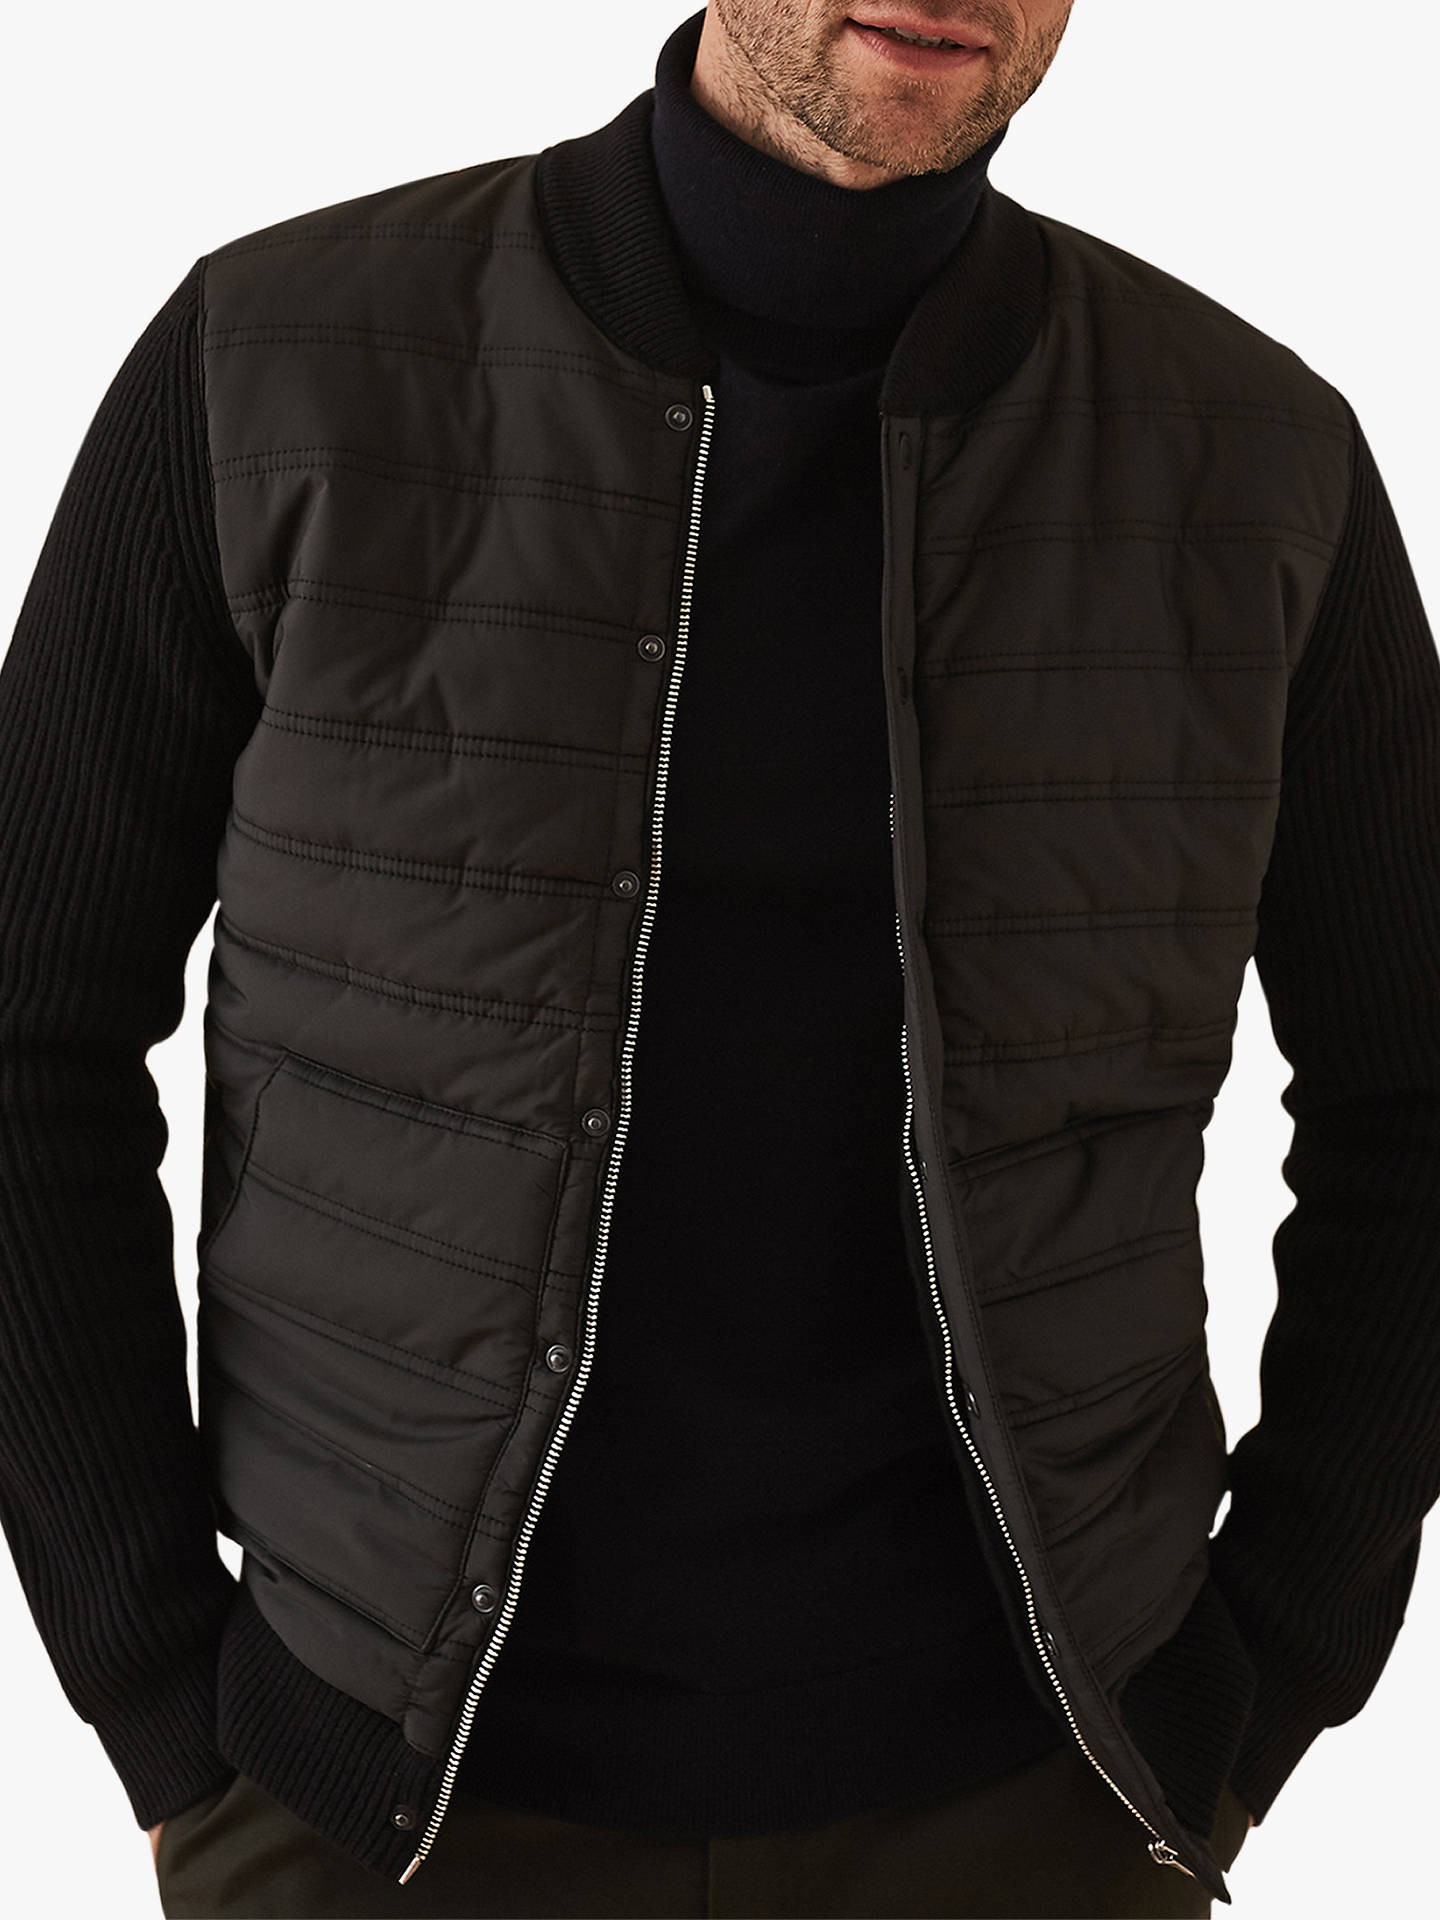 9a6581453 Reiss Watson Long Sleeve Quilted Bomber Jacket, Black at John Lewis ...